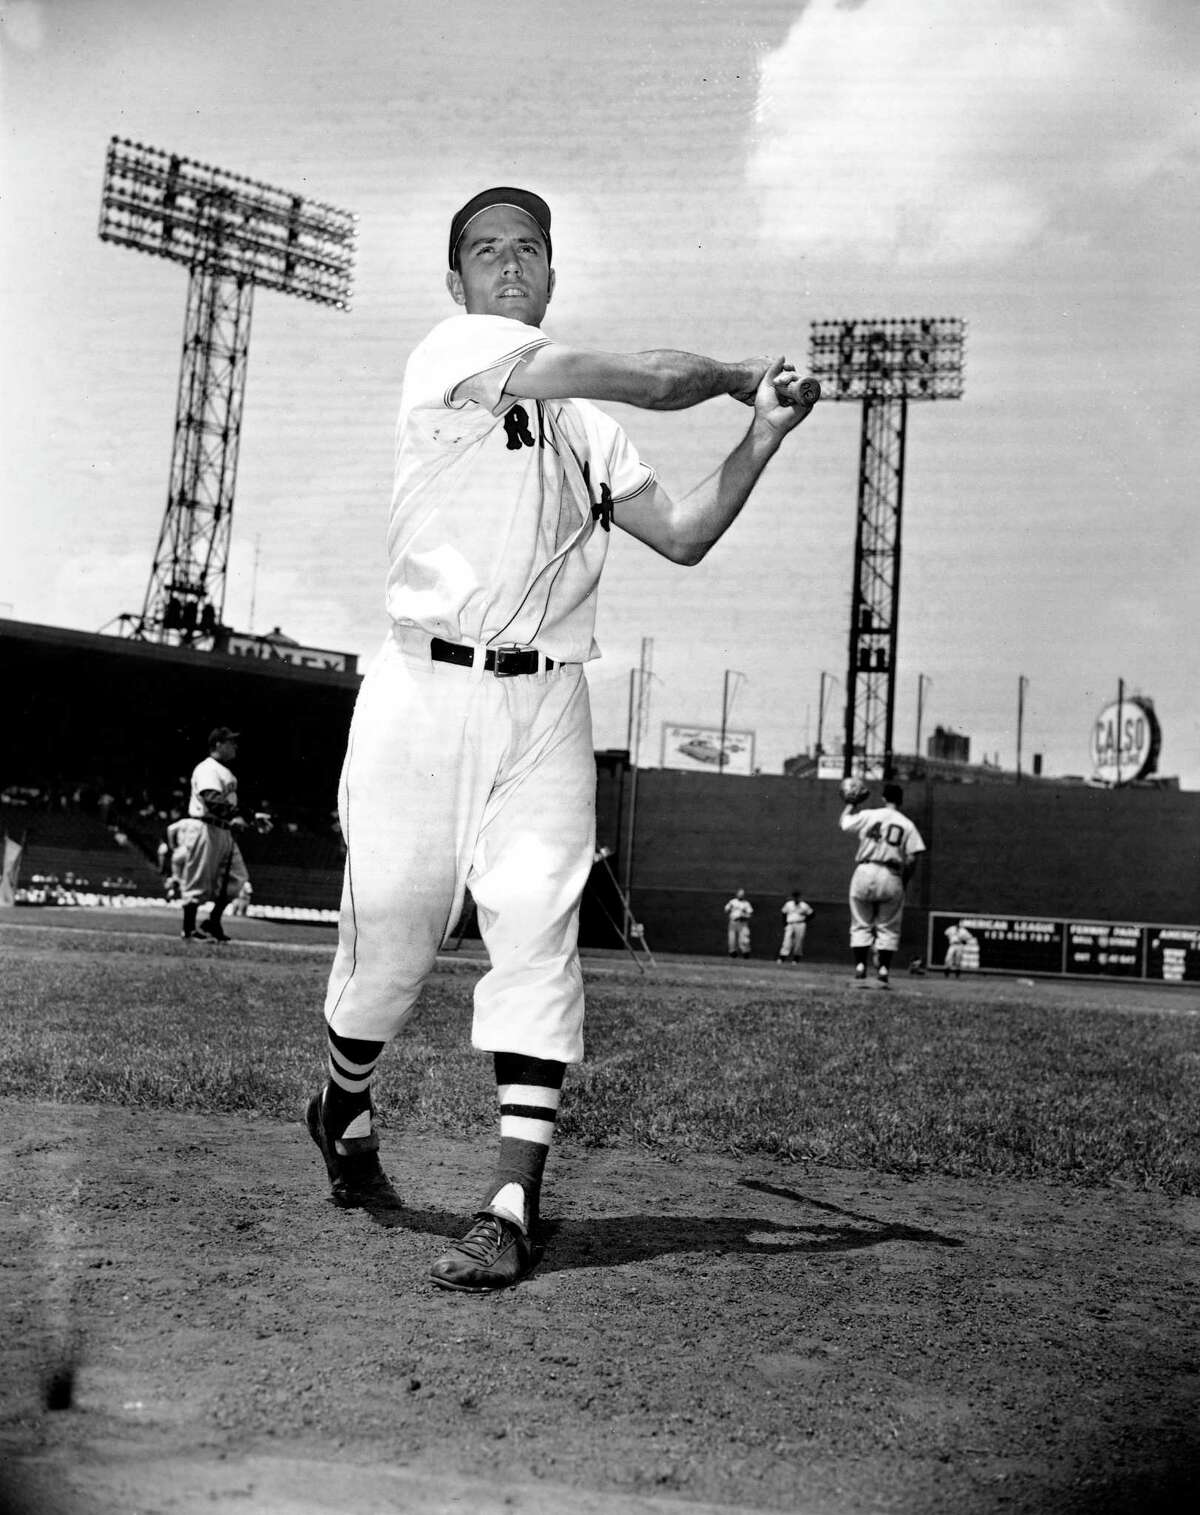 In this file photo, Jim Piersall of the Boston Red Sox poses at Fenway Park in Boston, Ma., before a game against the Cleveland Indians. Piersall, who bared his soul about his struggles with mental illness in his book 'Fear Strikes Out,' has died. The Boston Red Sox, for whom Piersall played for seven of his 17 seasons in the majors, said Piersall died Saturday at a care facility in Wheaton, Ill., after a monthslong illness.